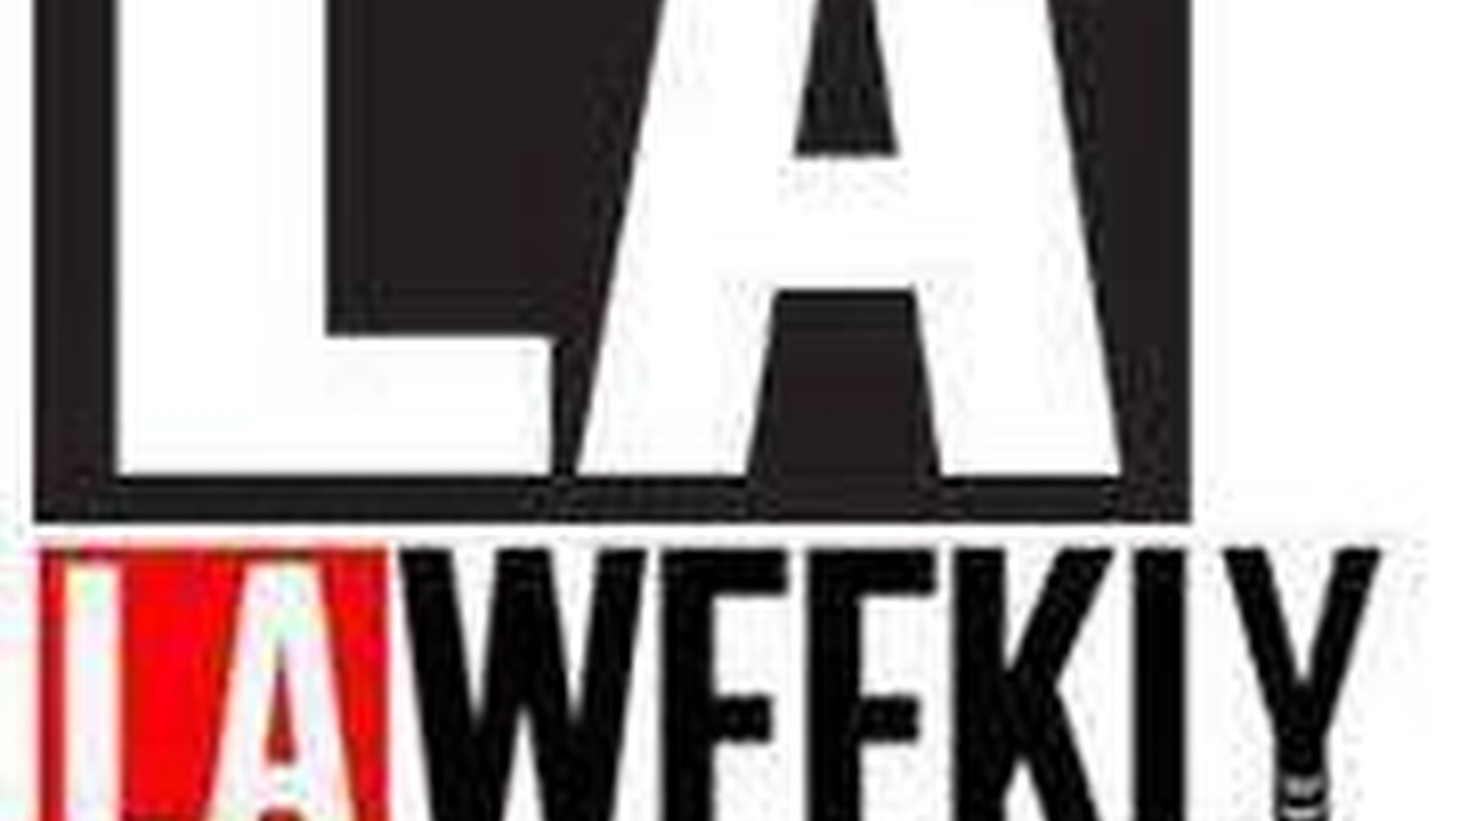 The LA Weekly is cutting its theater section by roughly 70 percent, perhaps more importantly the size and frequency of critic Steven Leigh Morris' feature articles.